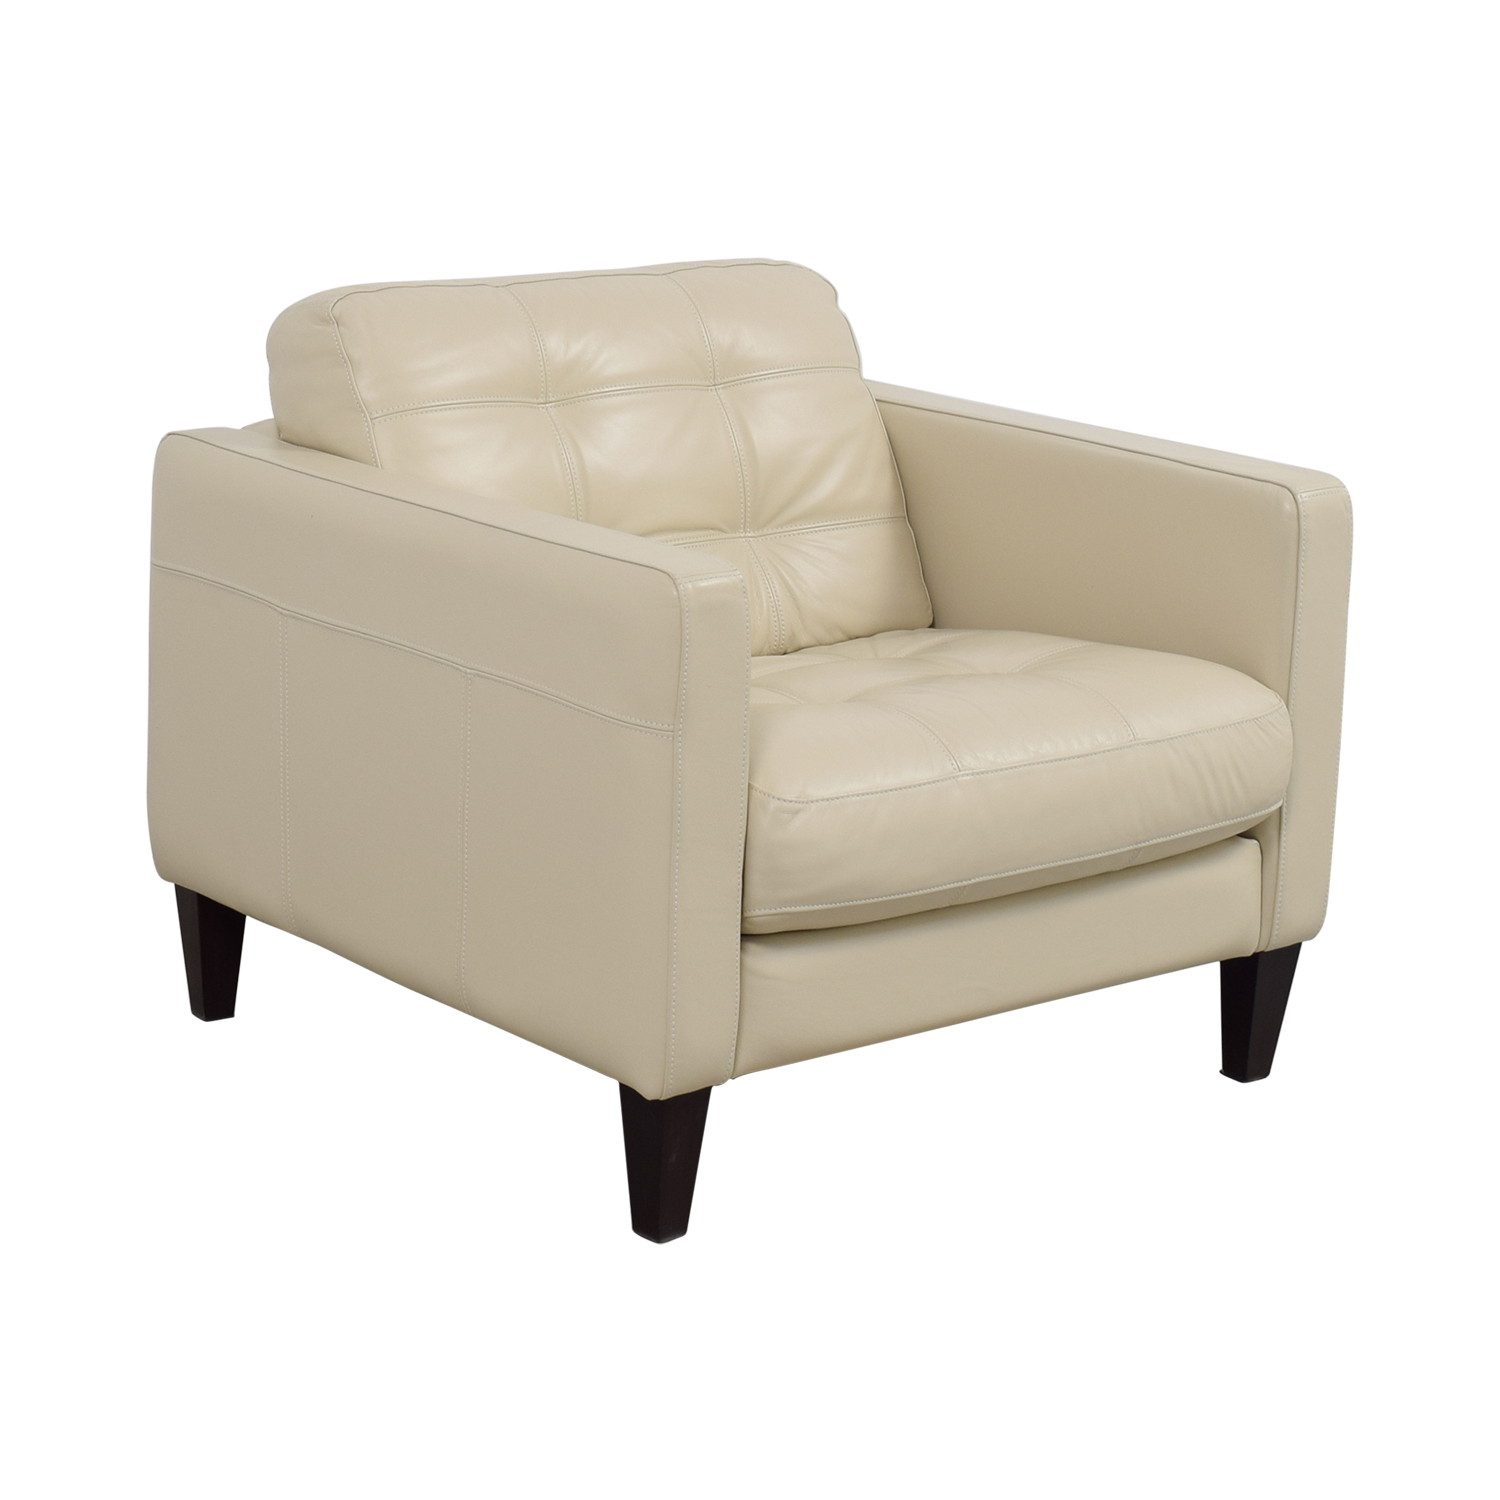 Excellent 48 Off Macys Macys Milano White Leather Tufted Accent Chair Chairs Inzonedesignstudio Interior Chair Design Inzonedesignstudiocom